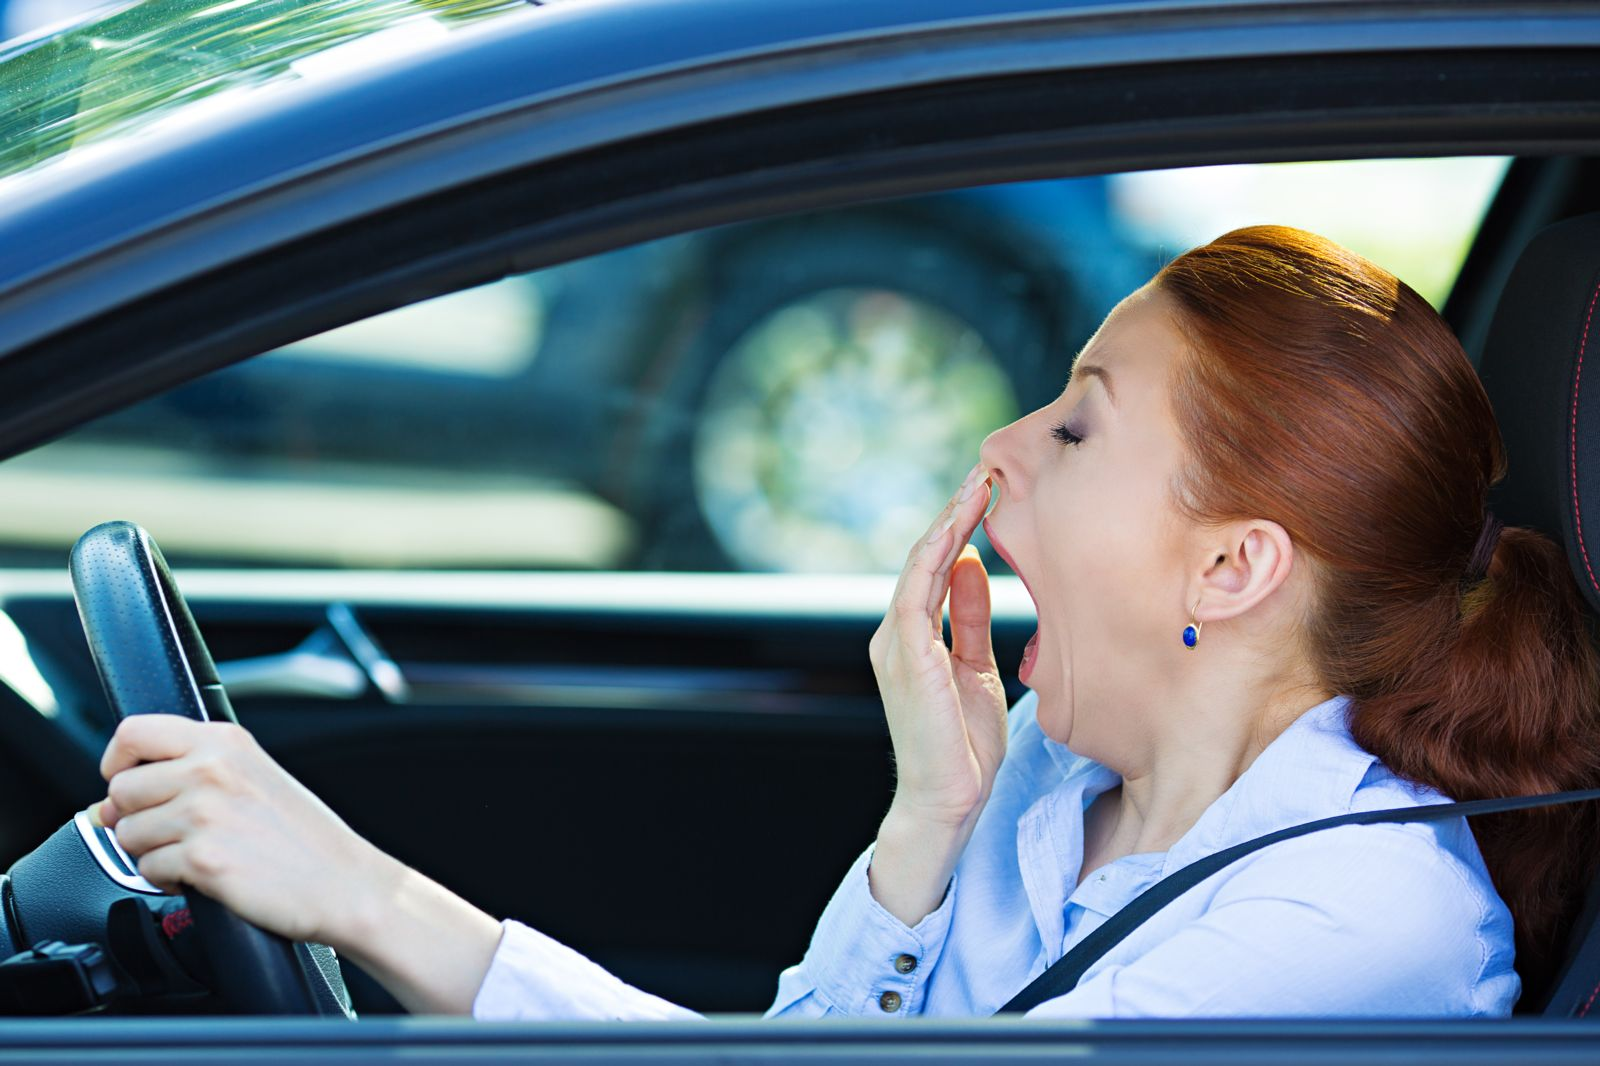 Woman Yawning While Driving